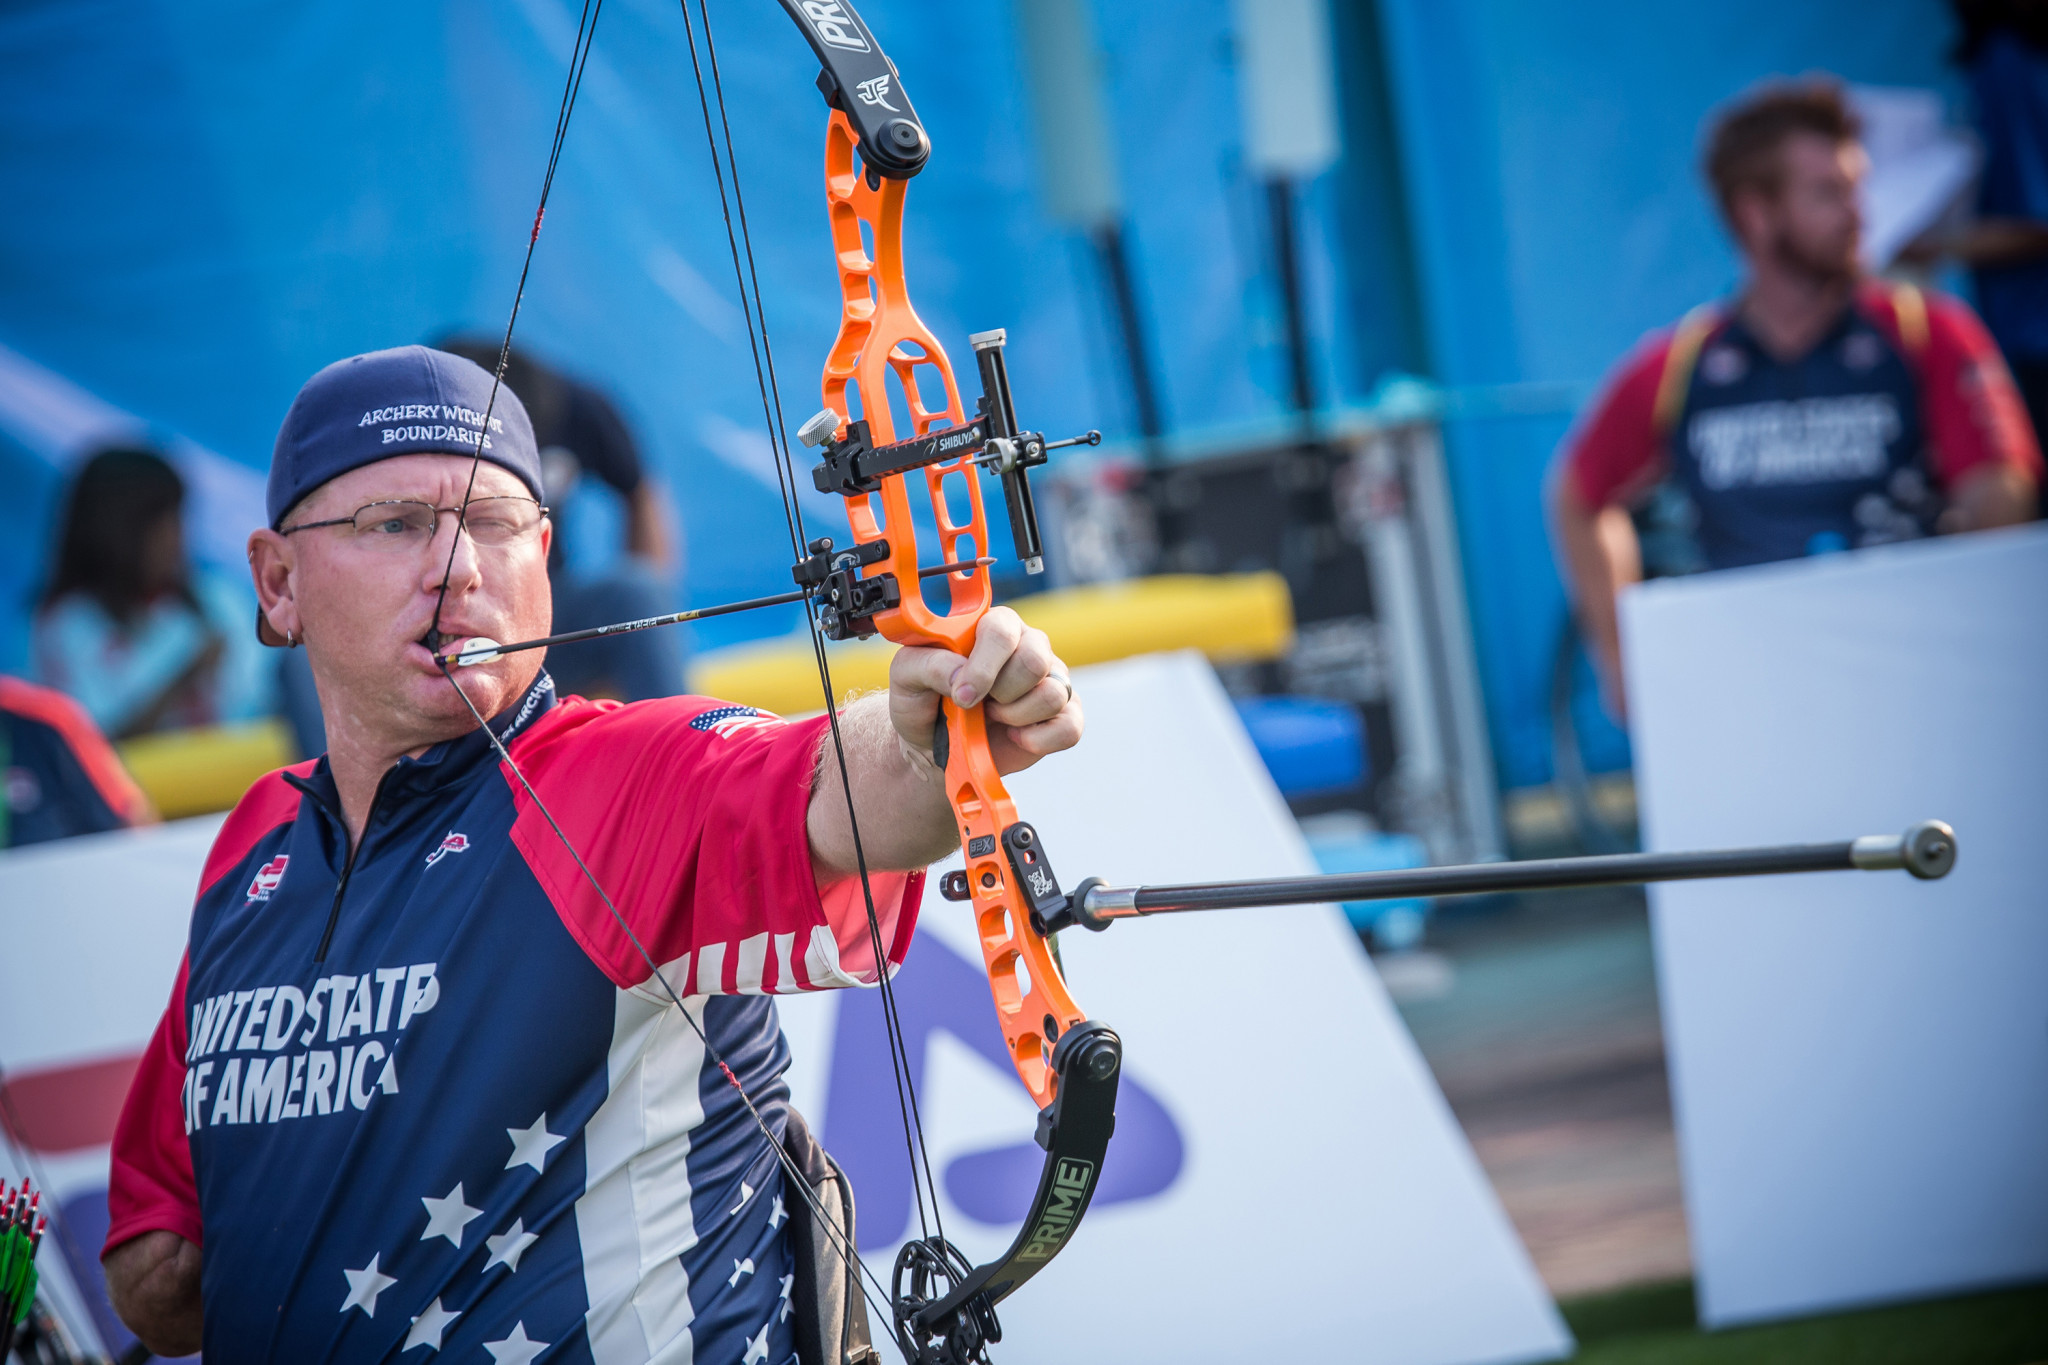 Archery returns to Parapan American Games but sitting volleyball not included at Santiago 2023